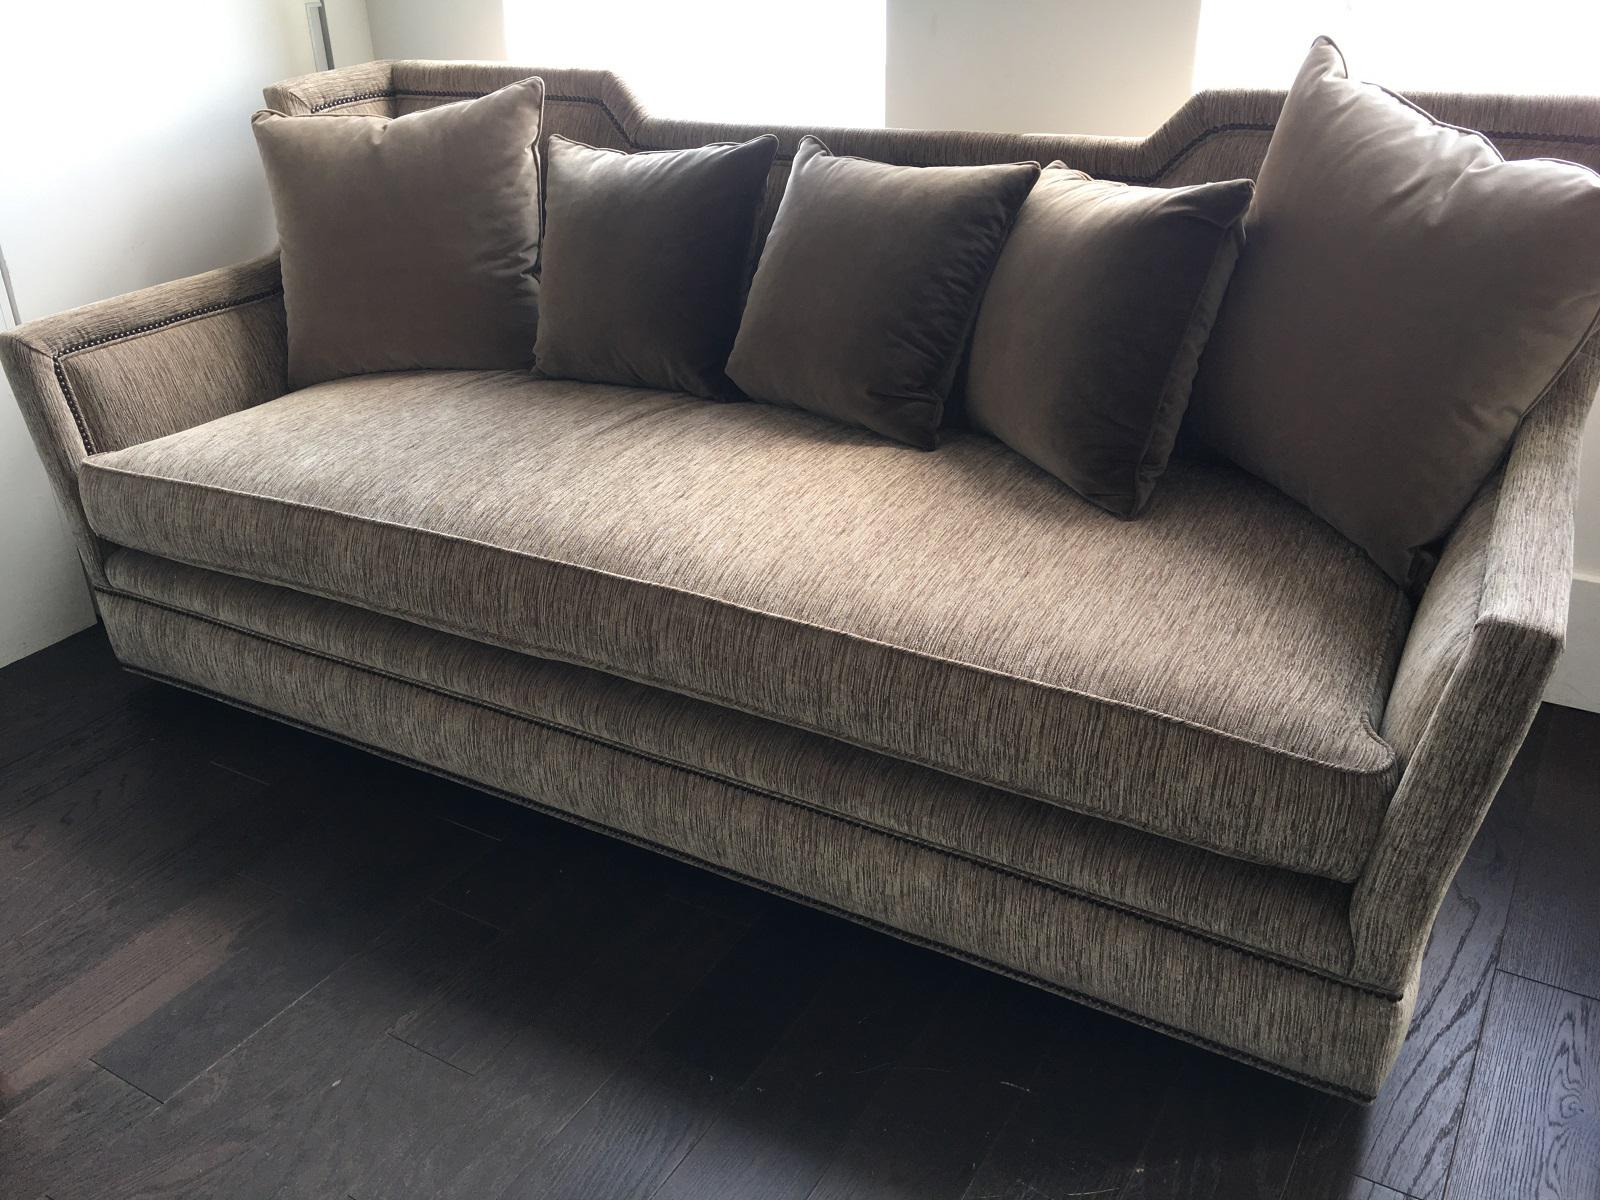 bench seat sofa. Transitional Bench Seat Sofa - Image 6 Of 7 S